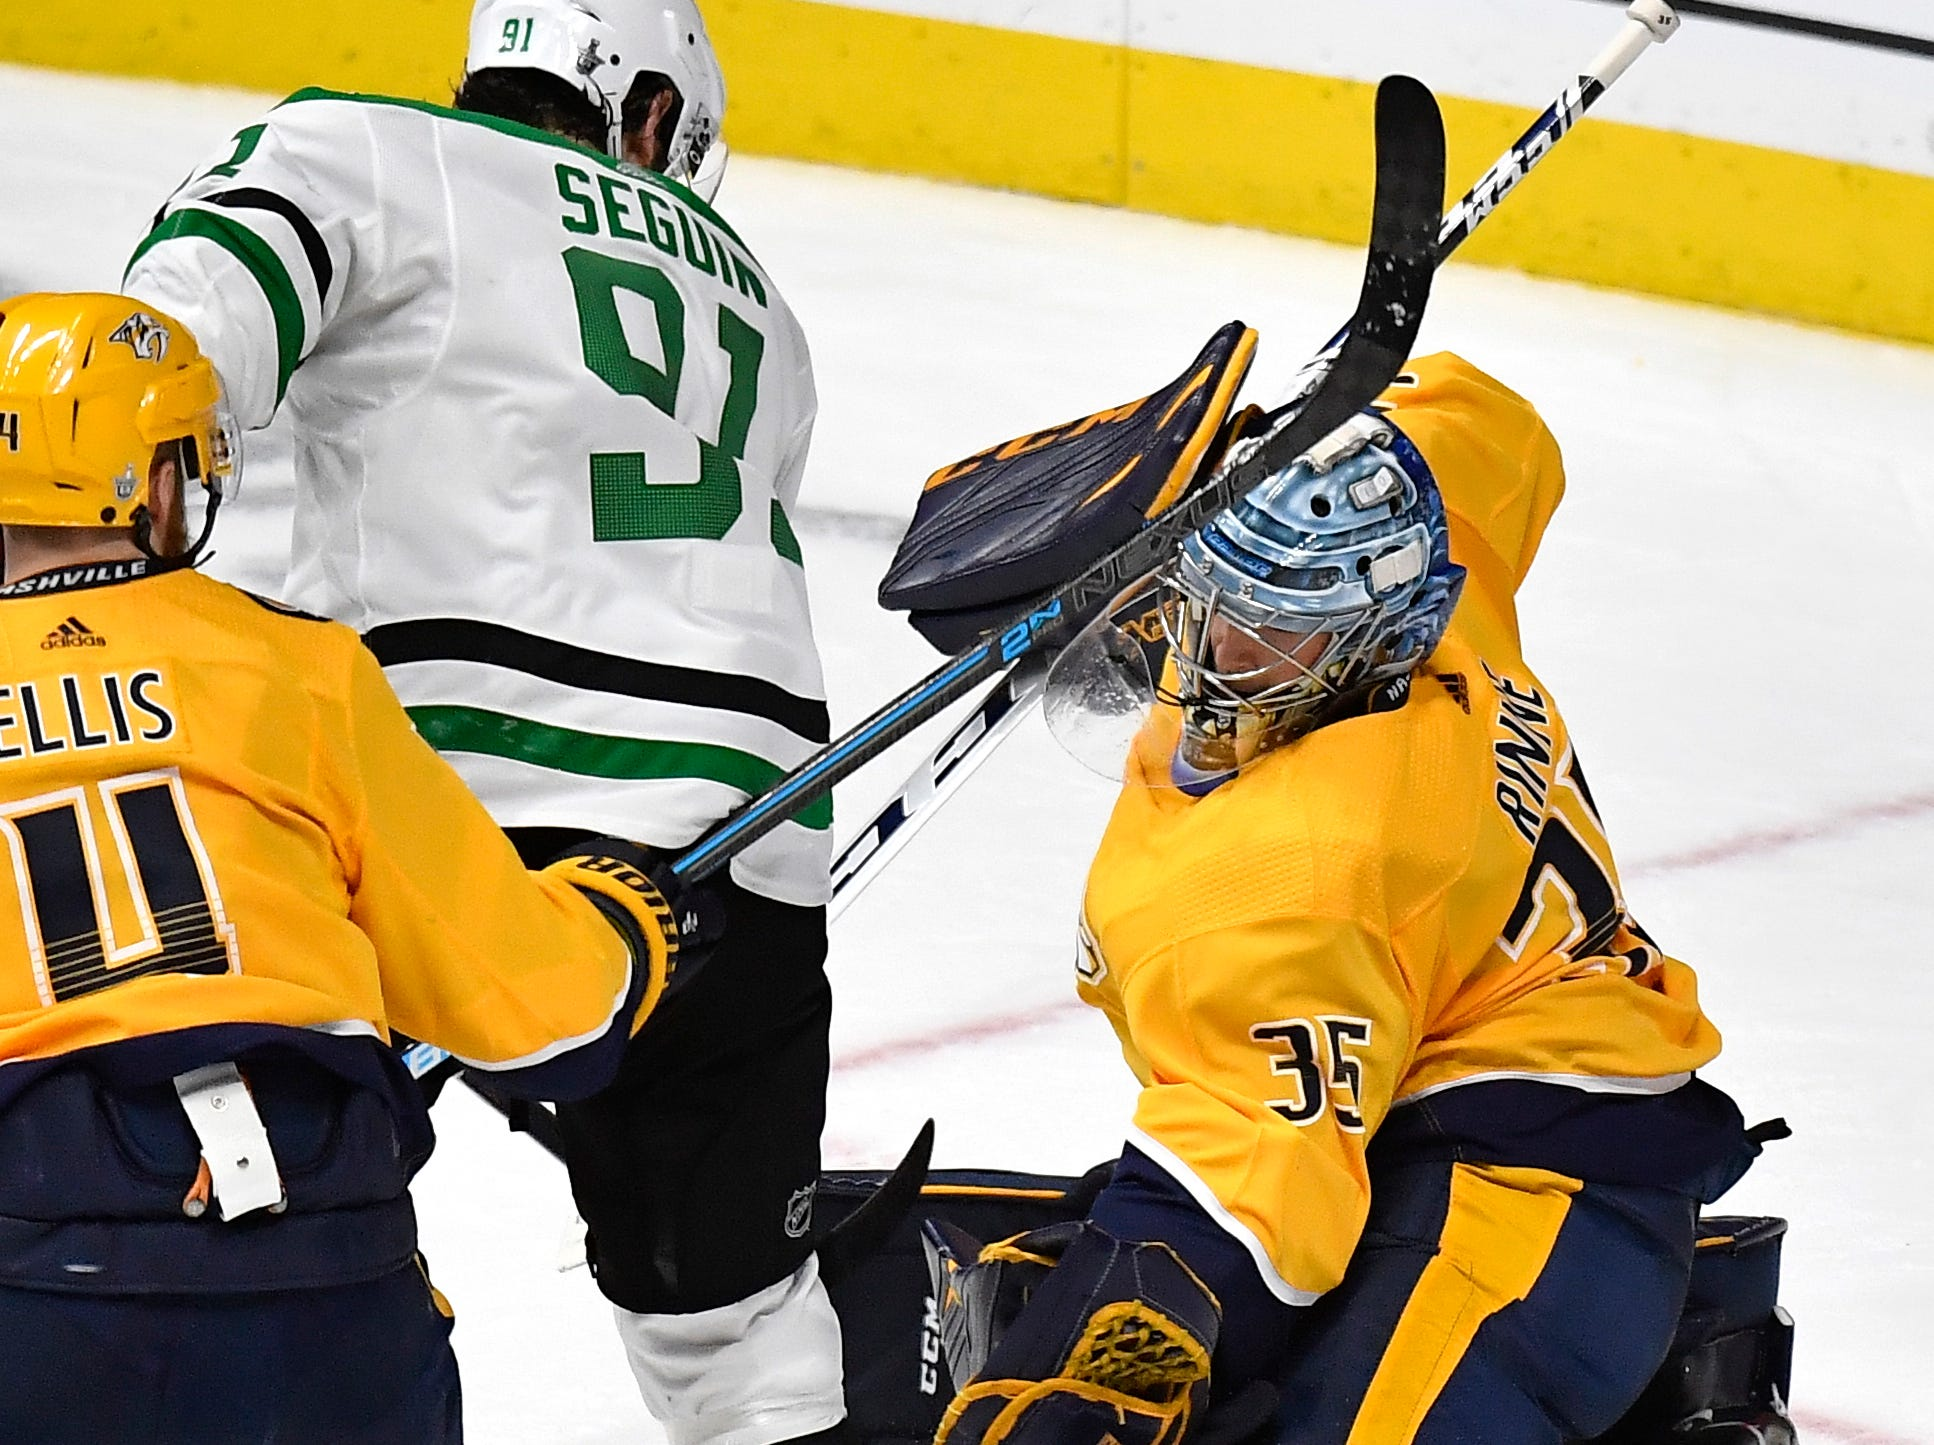 Nashville Predators goaltender Pekka Rinne (35) stops the puck as Dallas Stars center Tyler Seguin (91) closes in during the second period of the divisional semifinal game at Bridgestone Arena in Nashville, Tenn., Saturday, April 13, 2019.